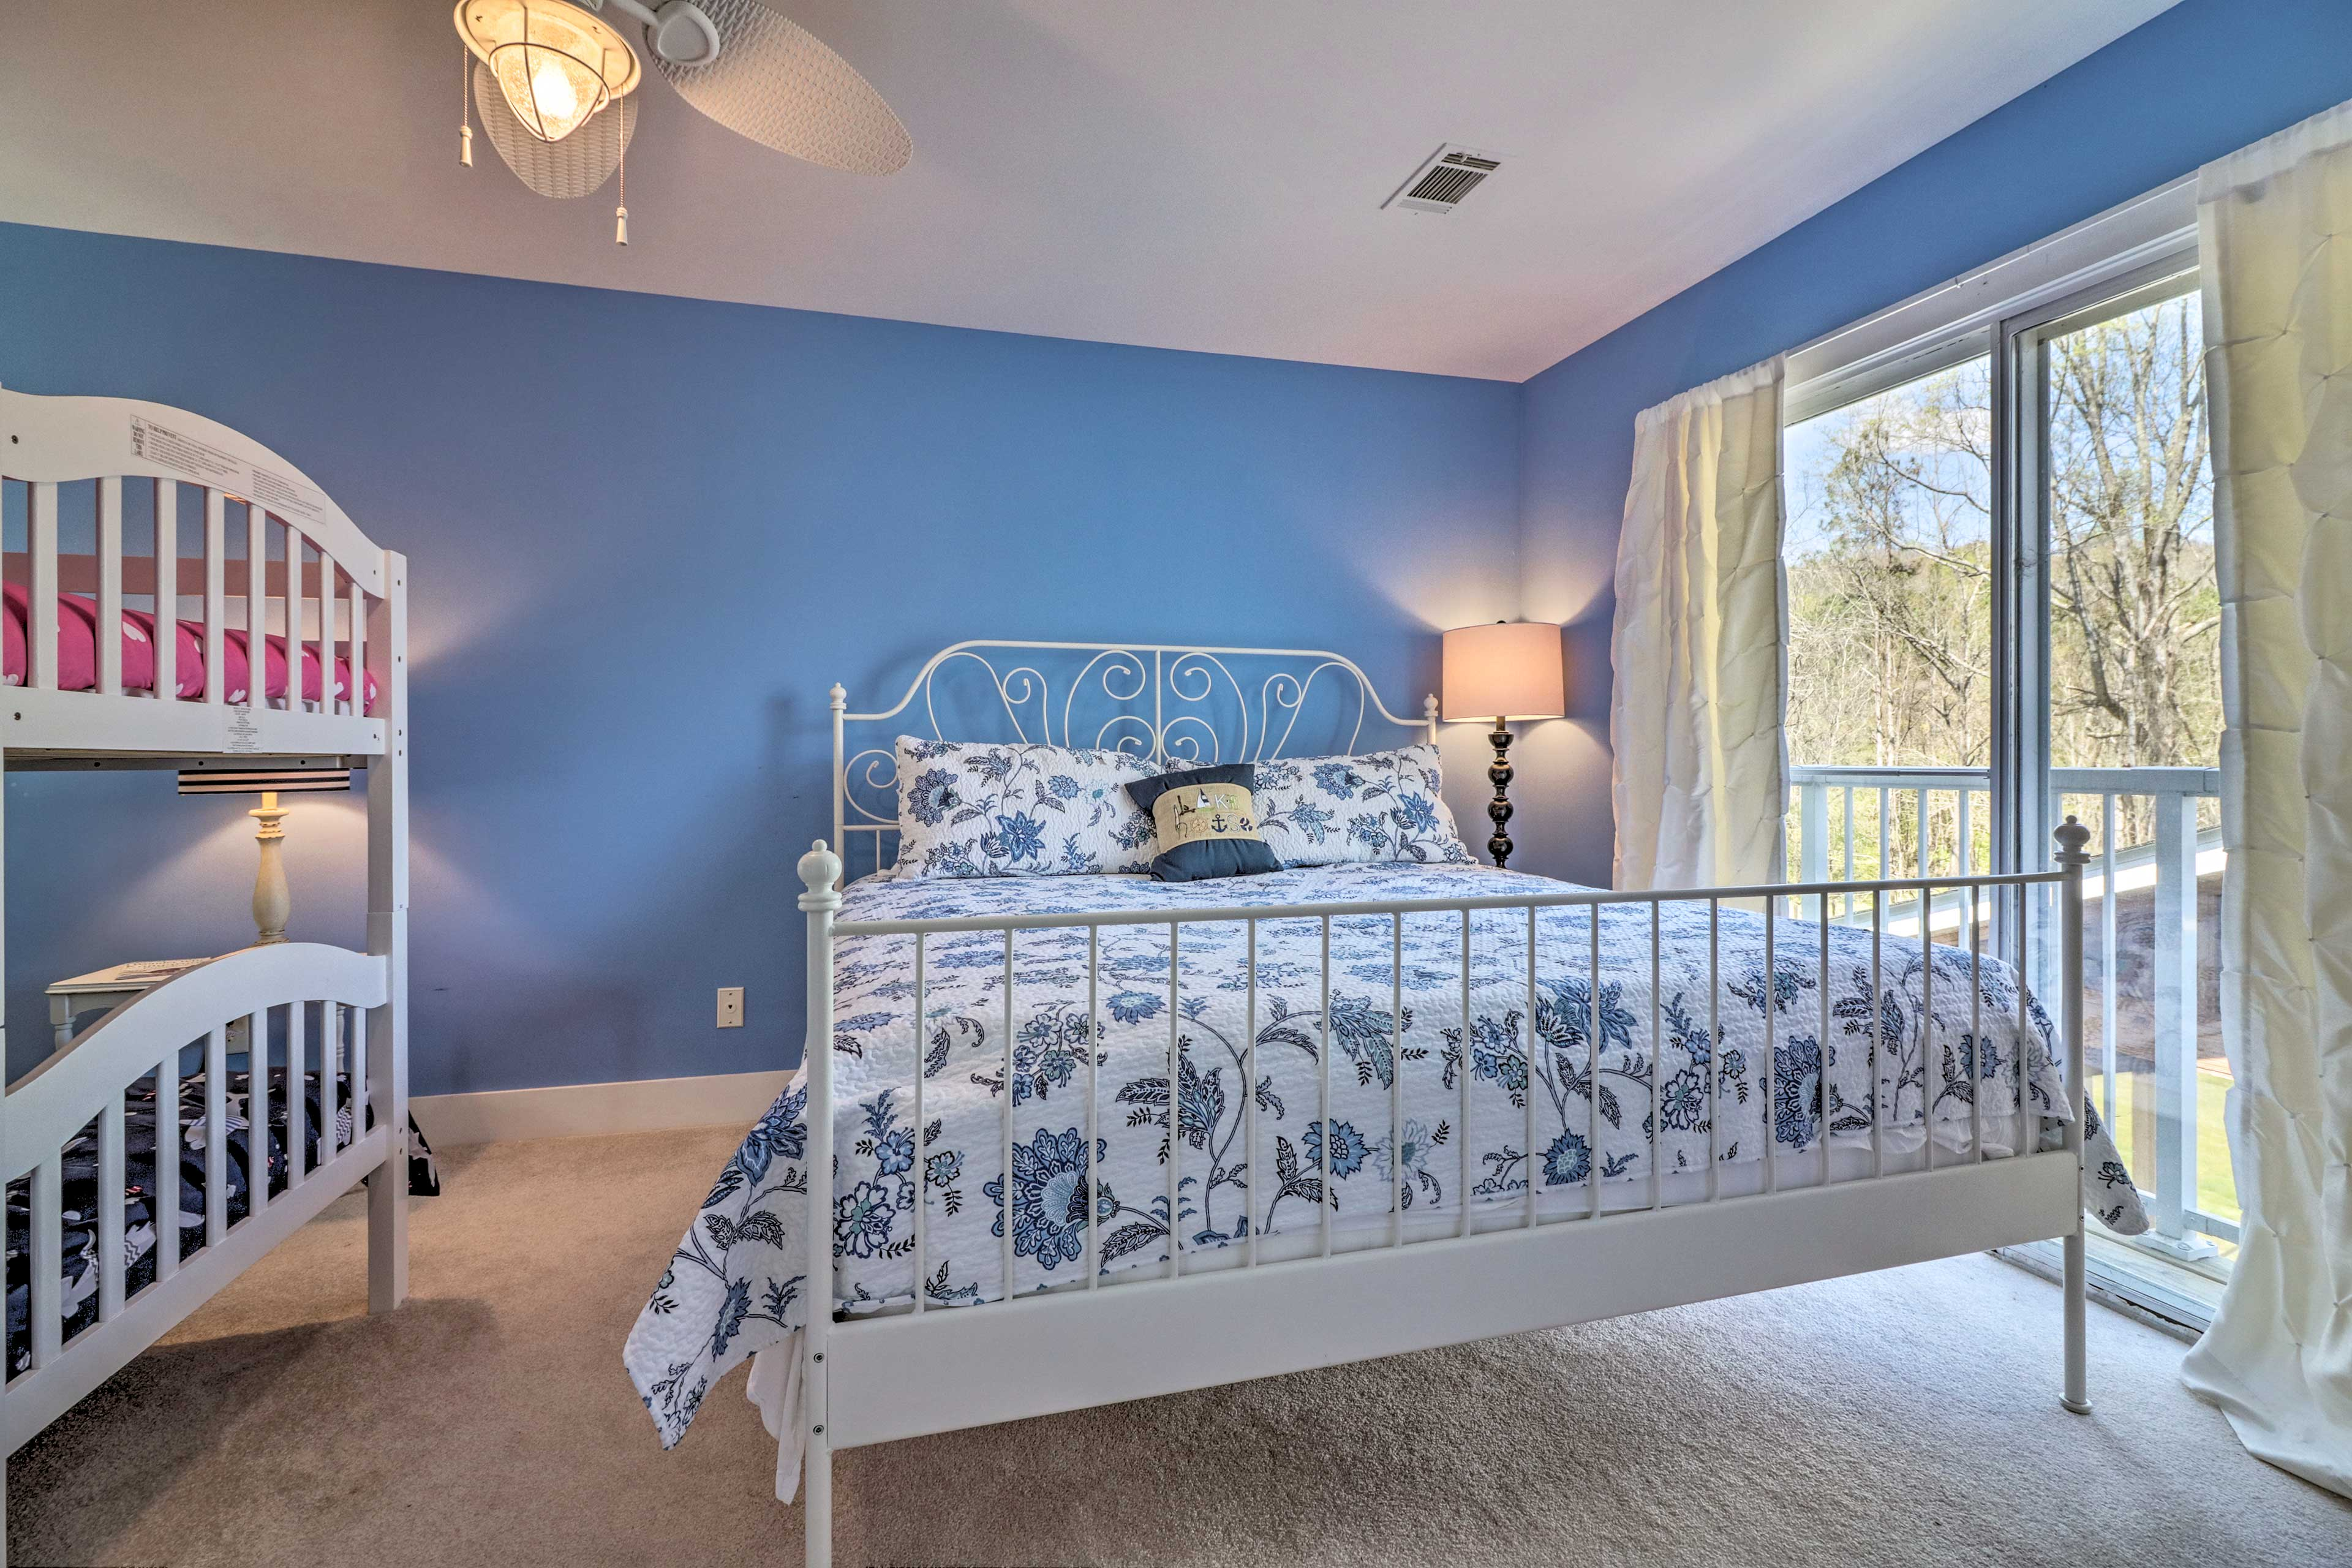 This bedroom is perfect for a family or group of children.